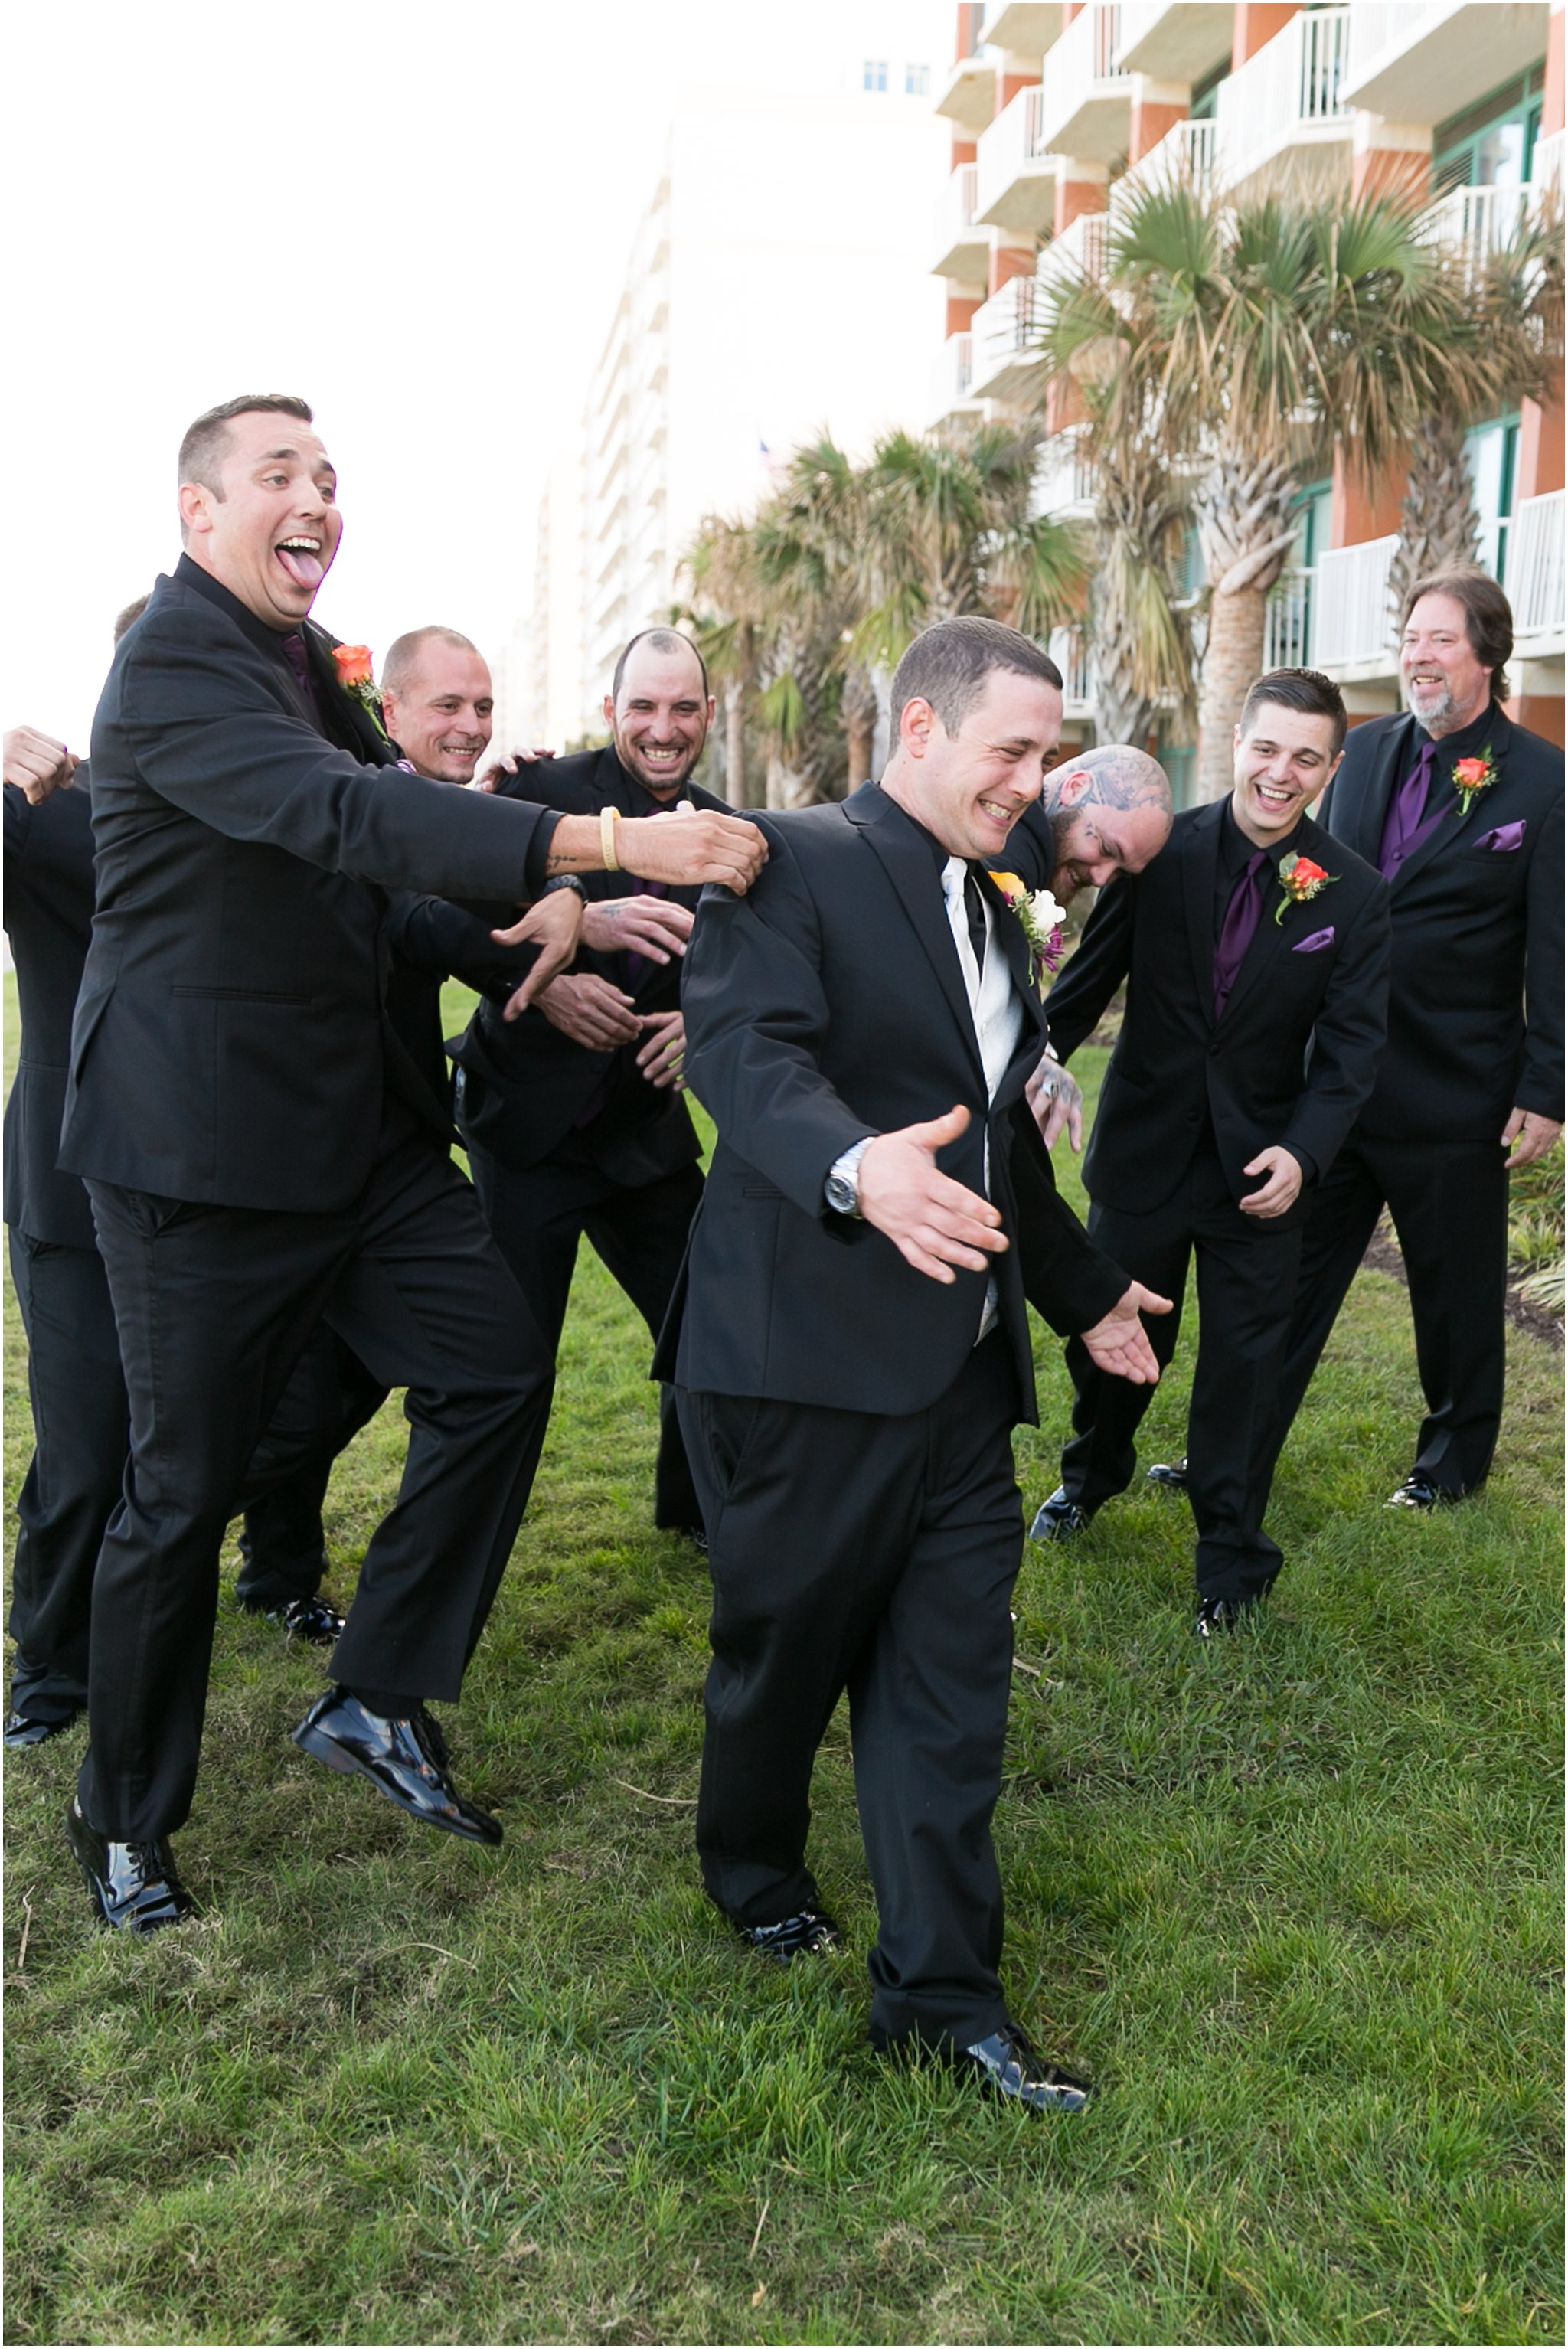 jessica_ryan_photography_wedding_virginia_beach_oceanfront_holiday_inn_north_suites_hotel_wedding_0675